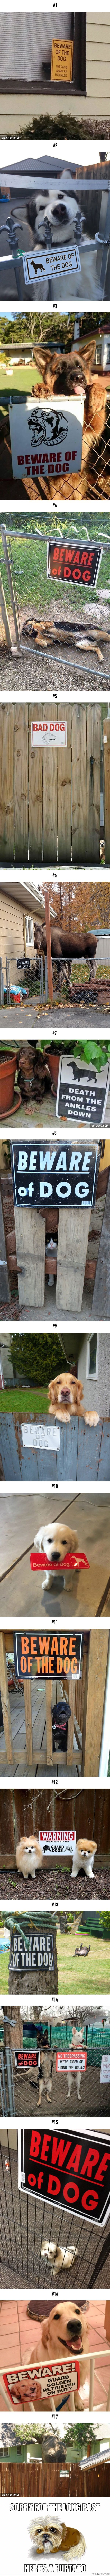 "17 Dangerous Dogs Behind ""Beware Of Dog"" Signs - 9GAG"